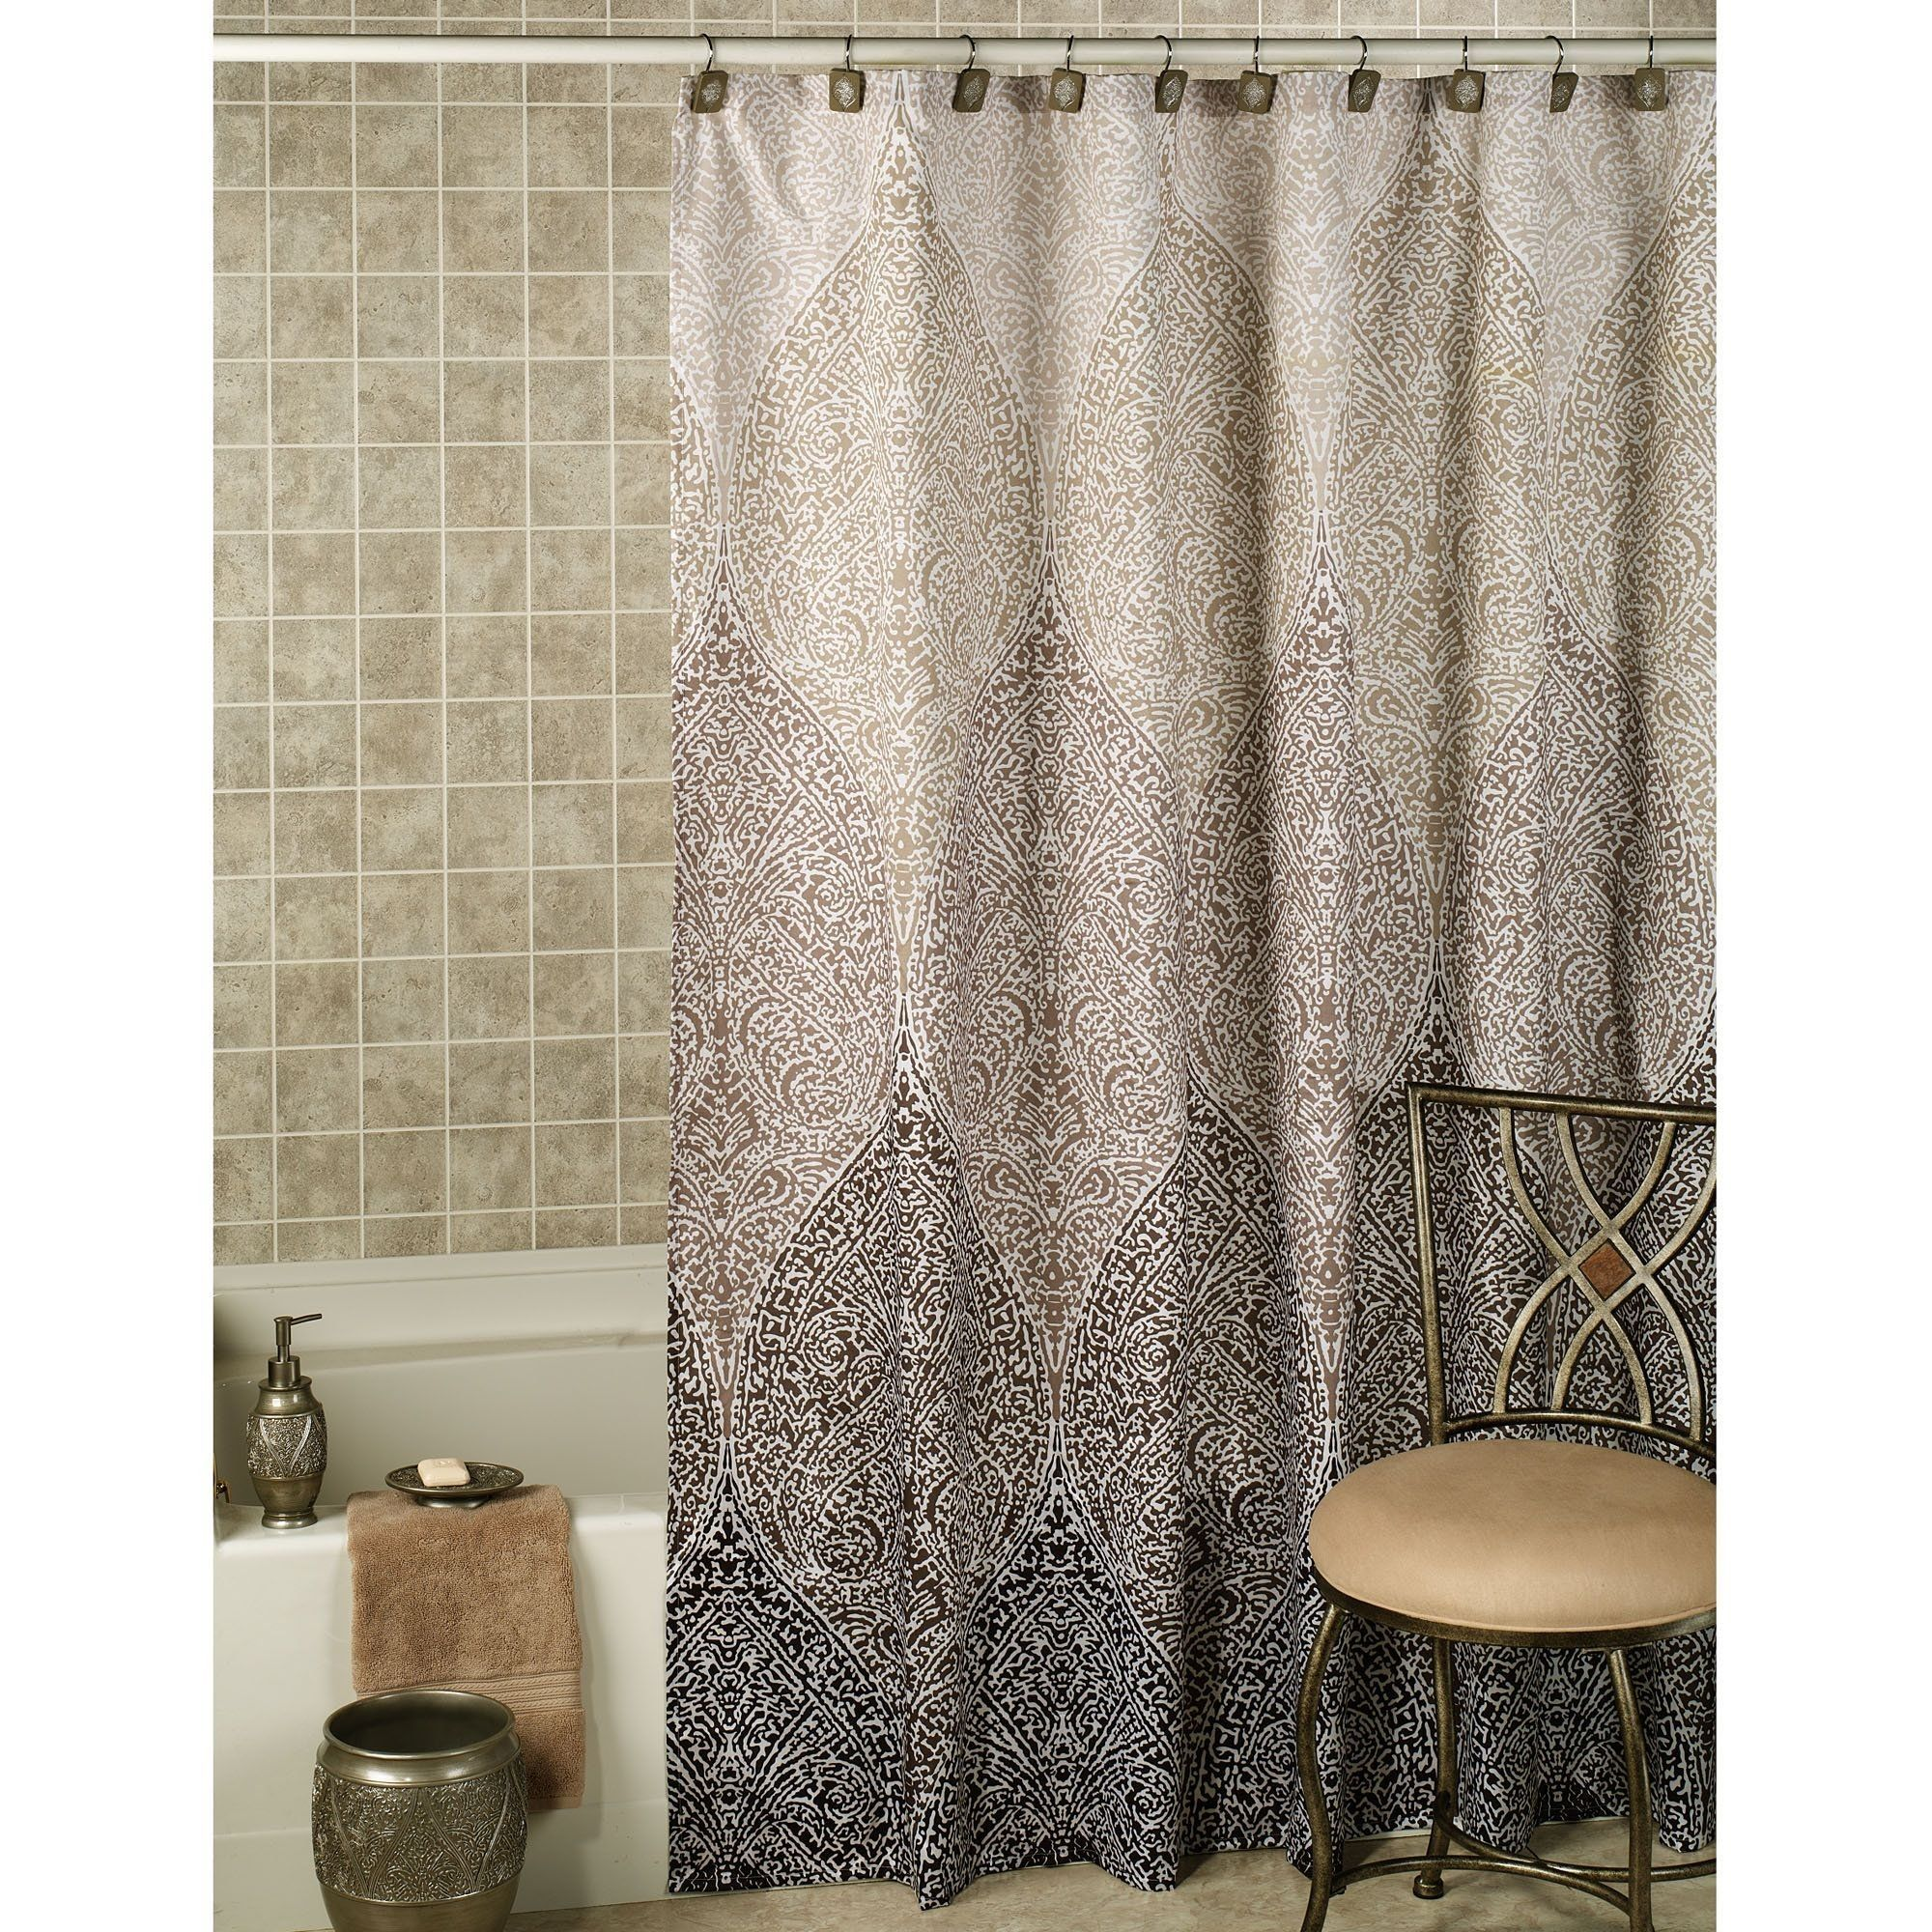 You Searched For Faucet With Images Vinyl Shower Curtains